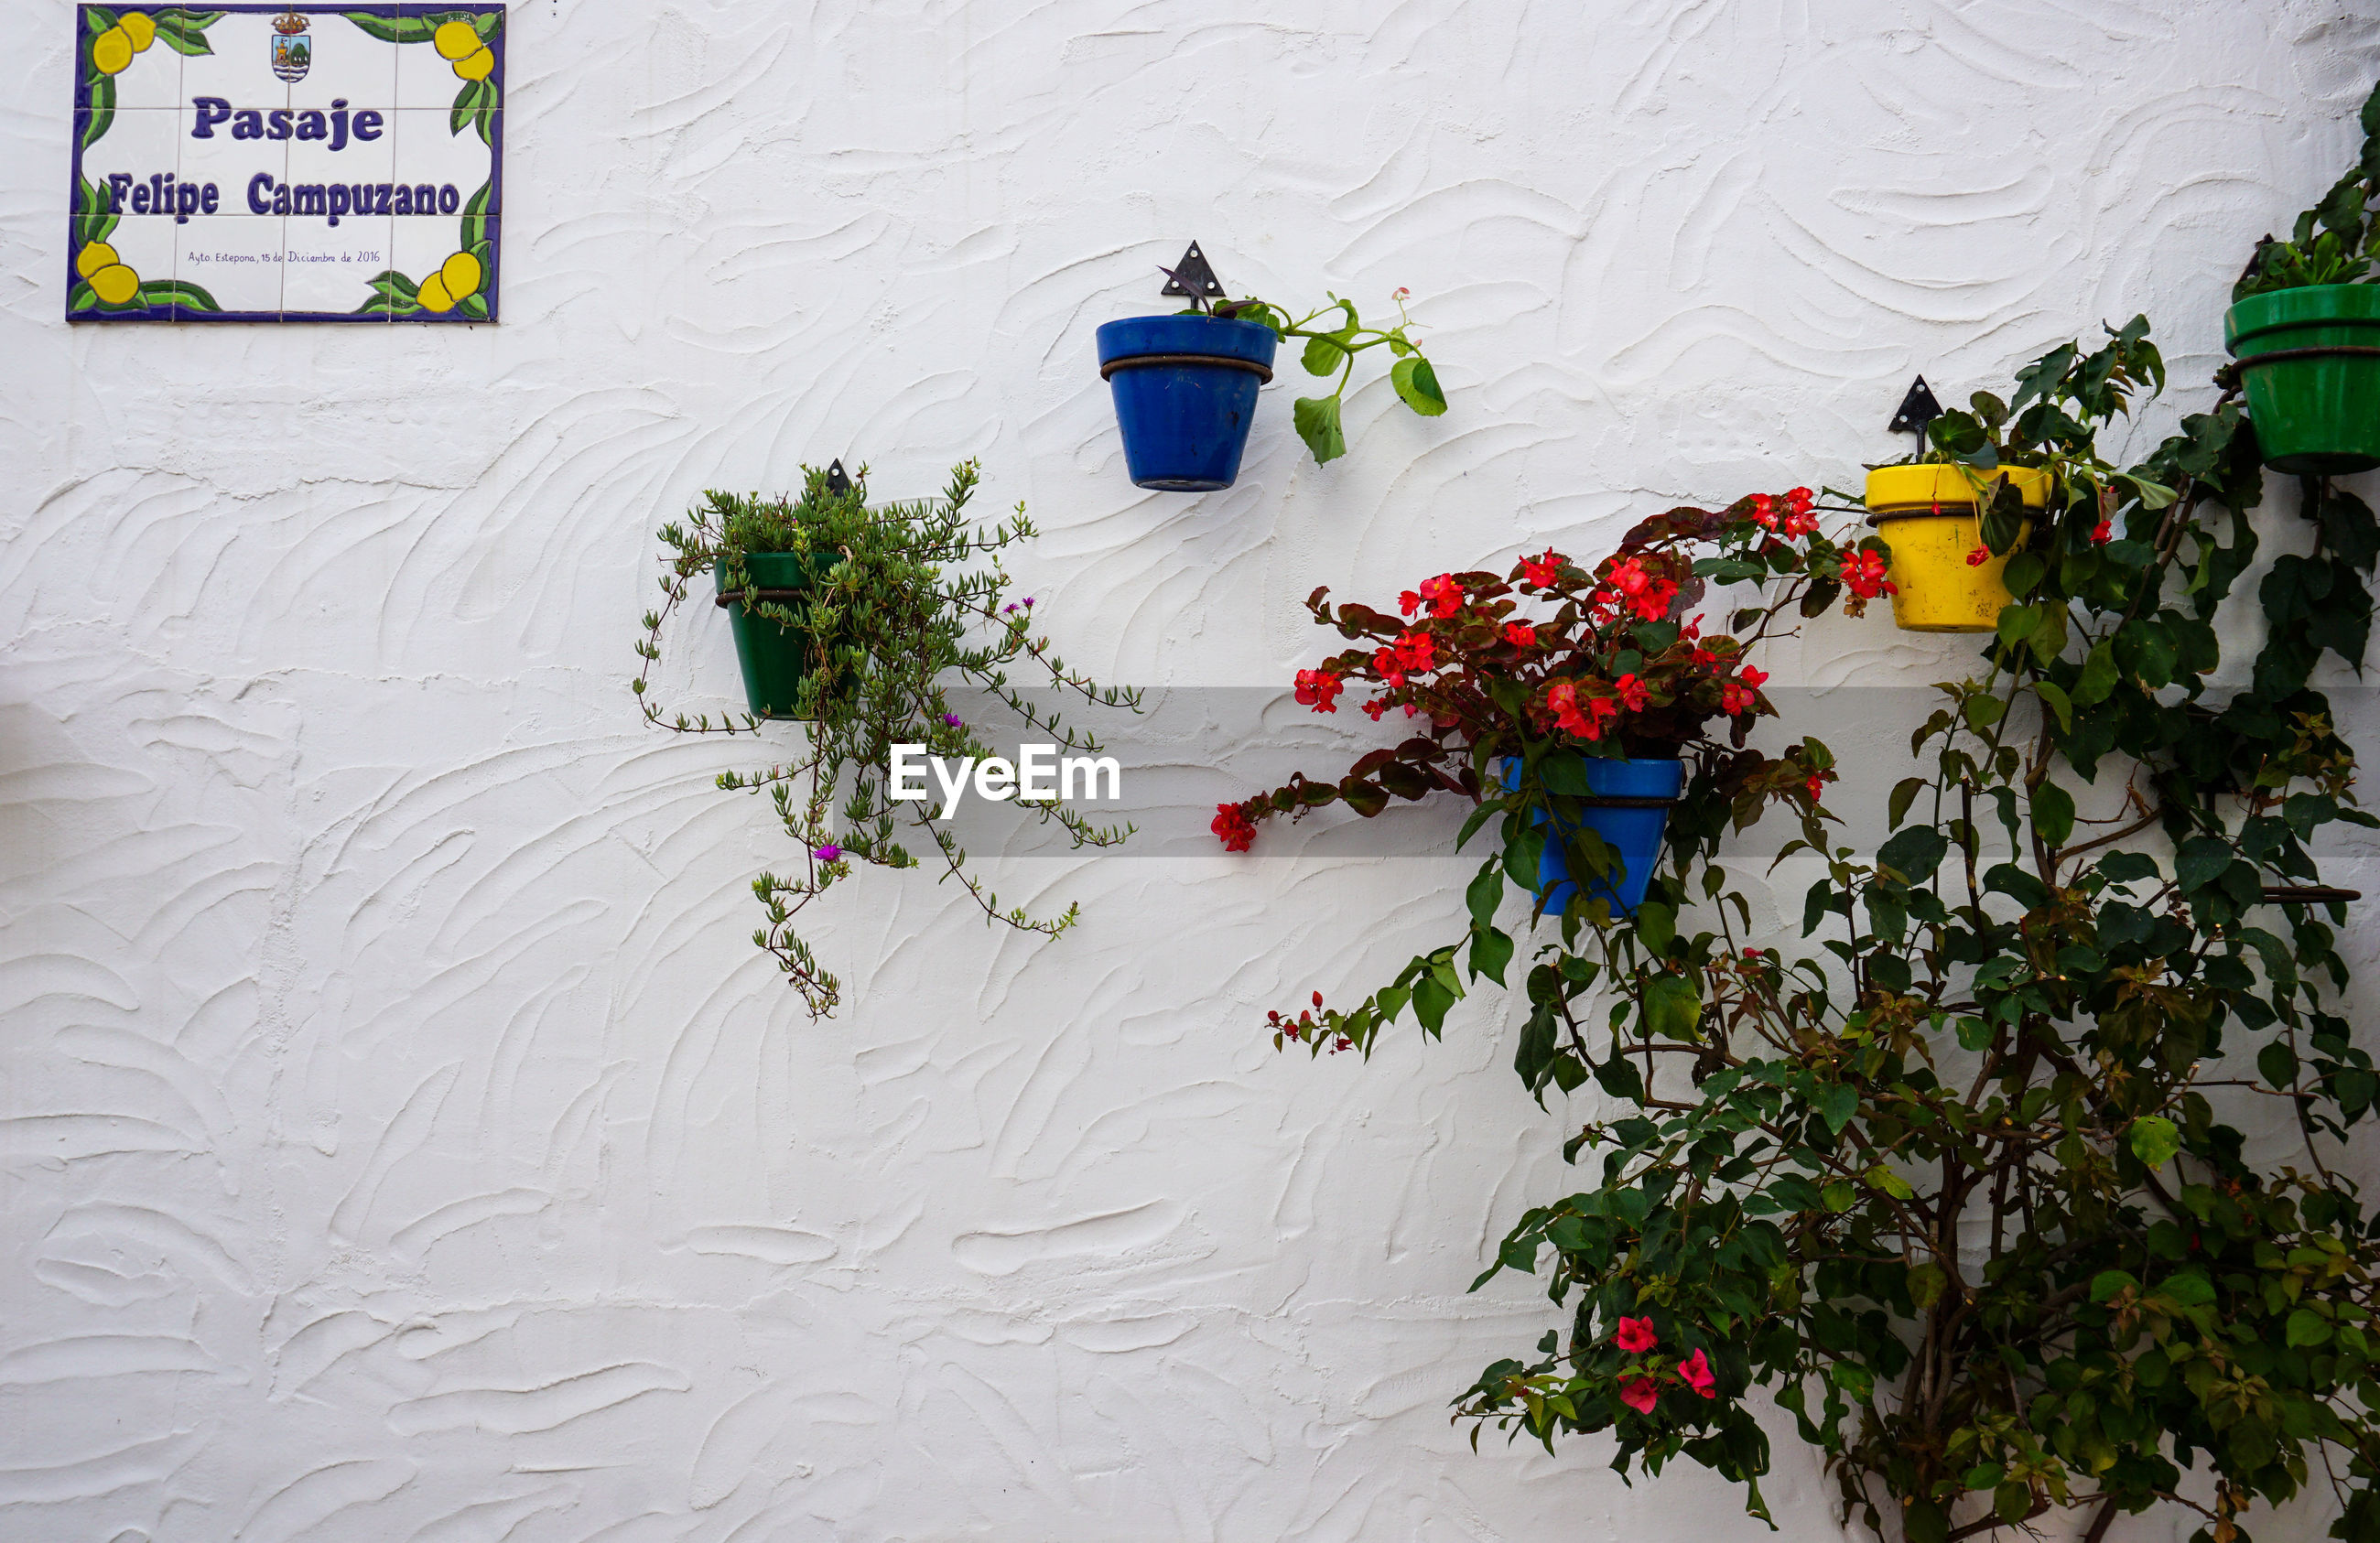 HIGH ANGLE VIEW OF FLOWERING PLANTS AGAINST WHITE WALL